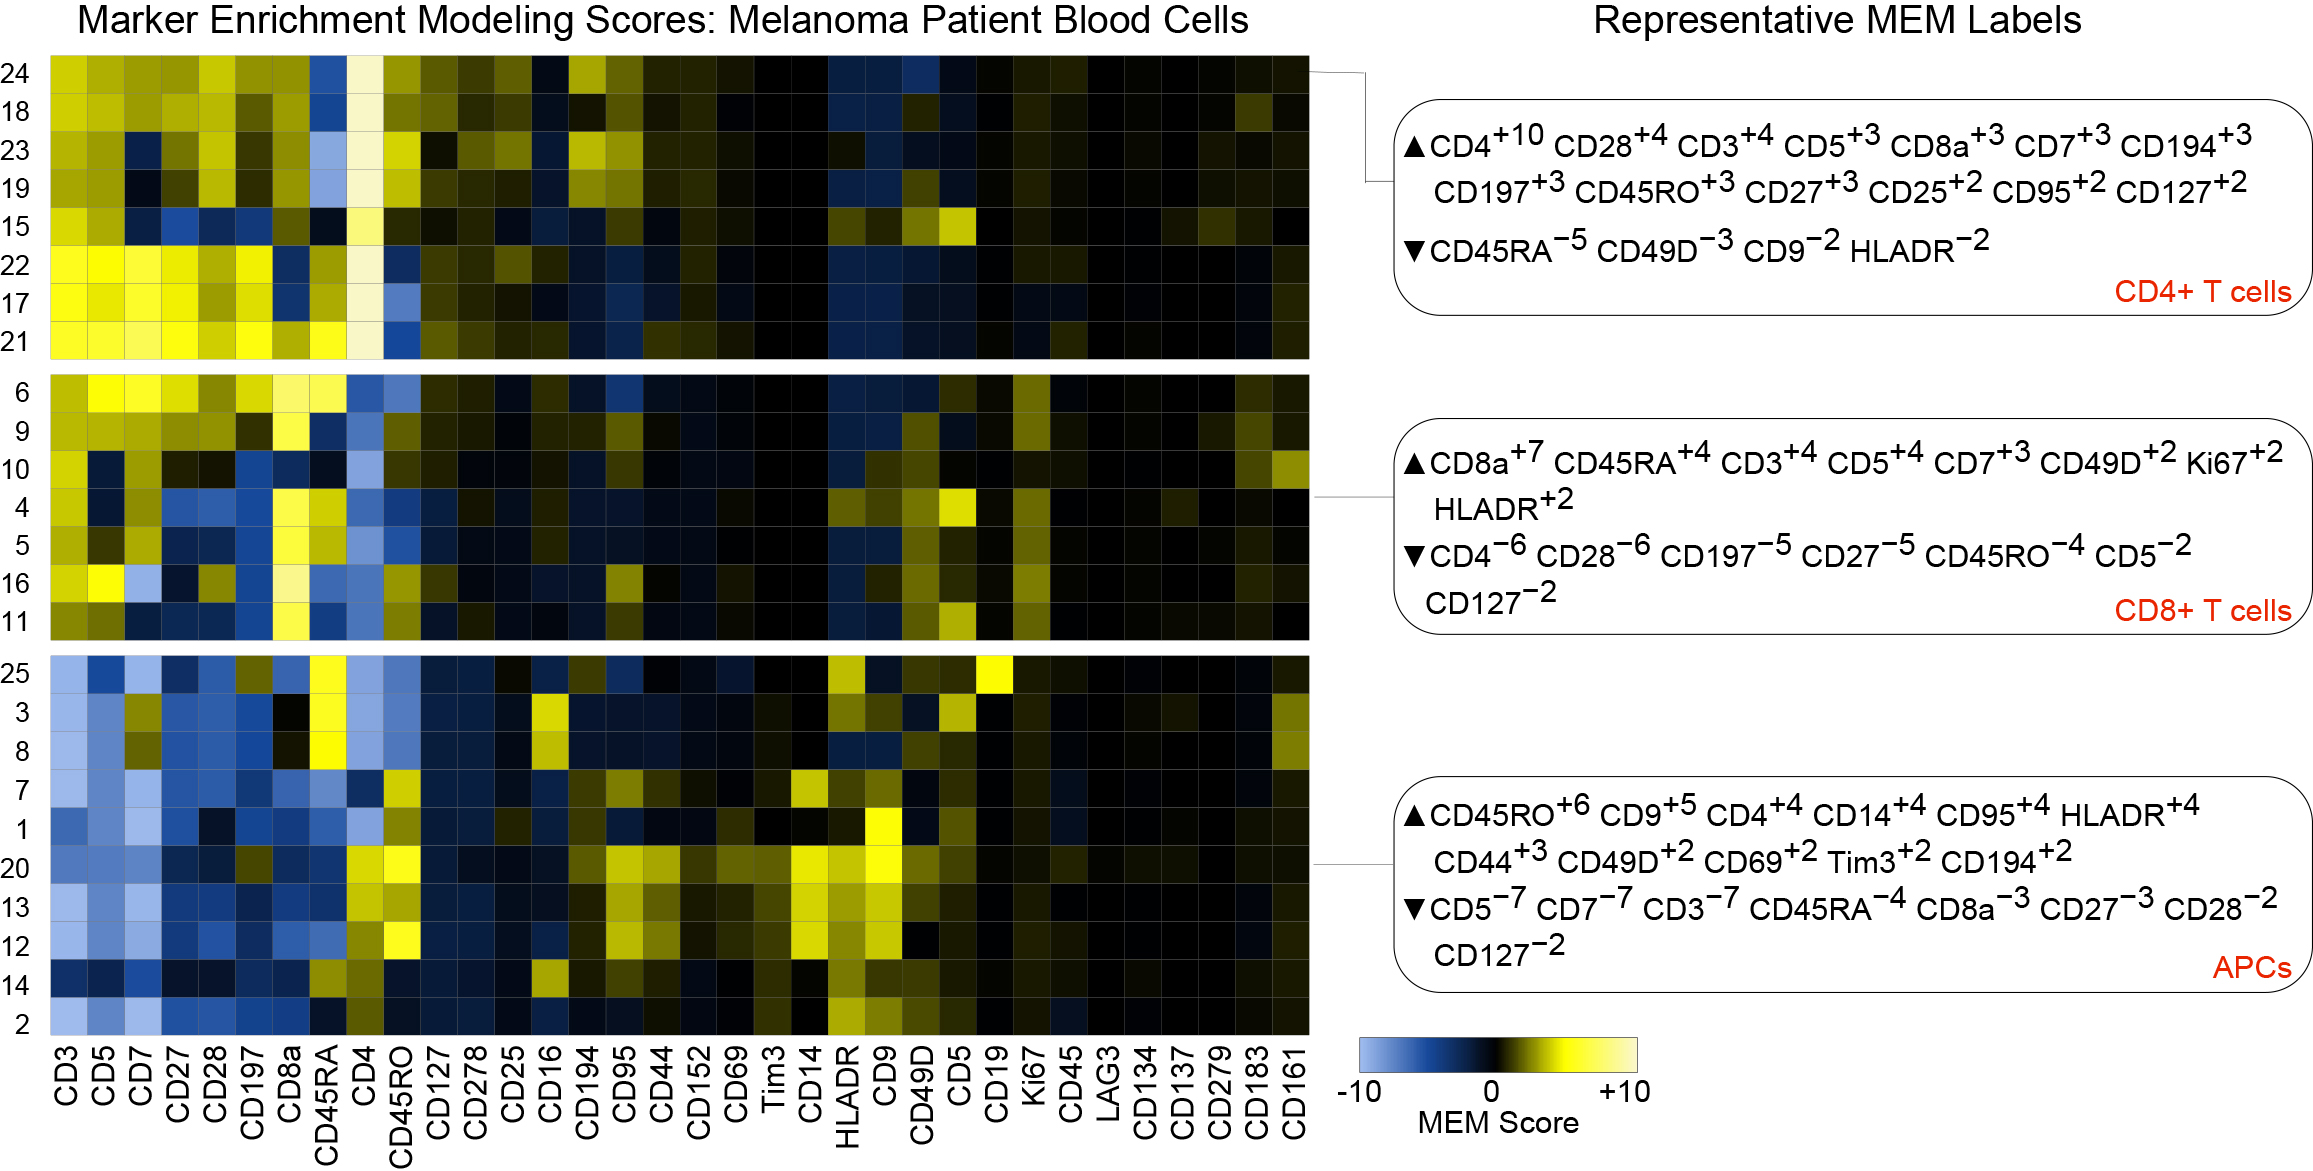 Diggins et al., Current Protocols in Cytometry - Measure and share cell identity with a MEM label